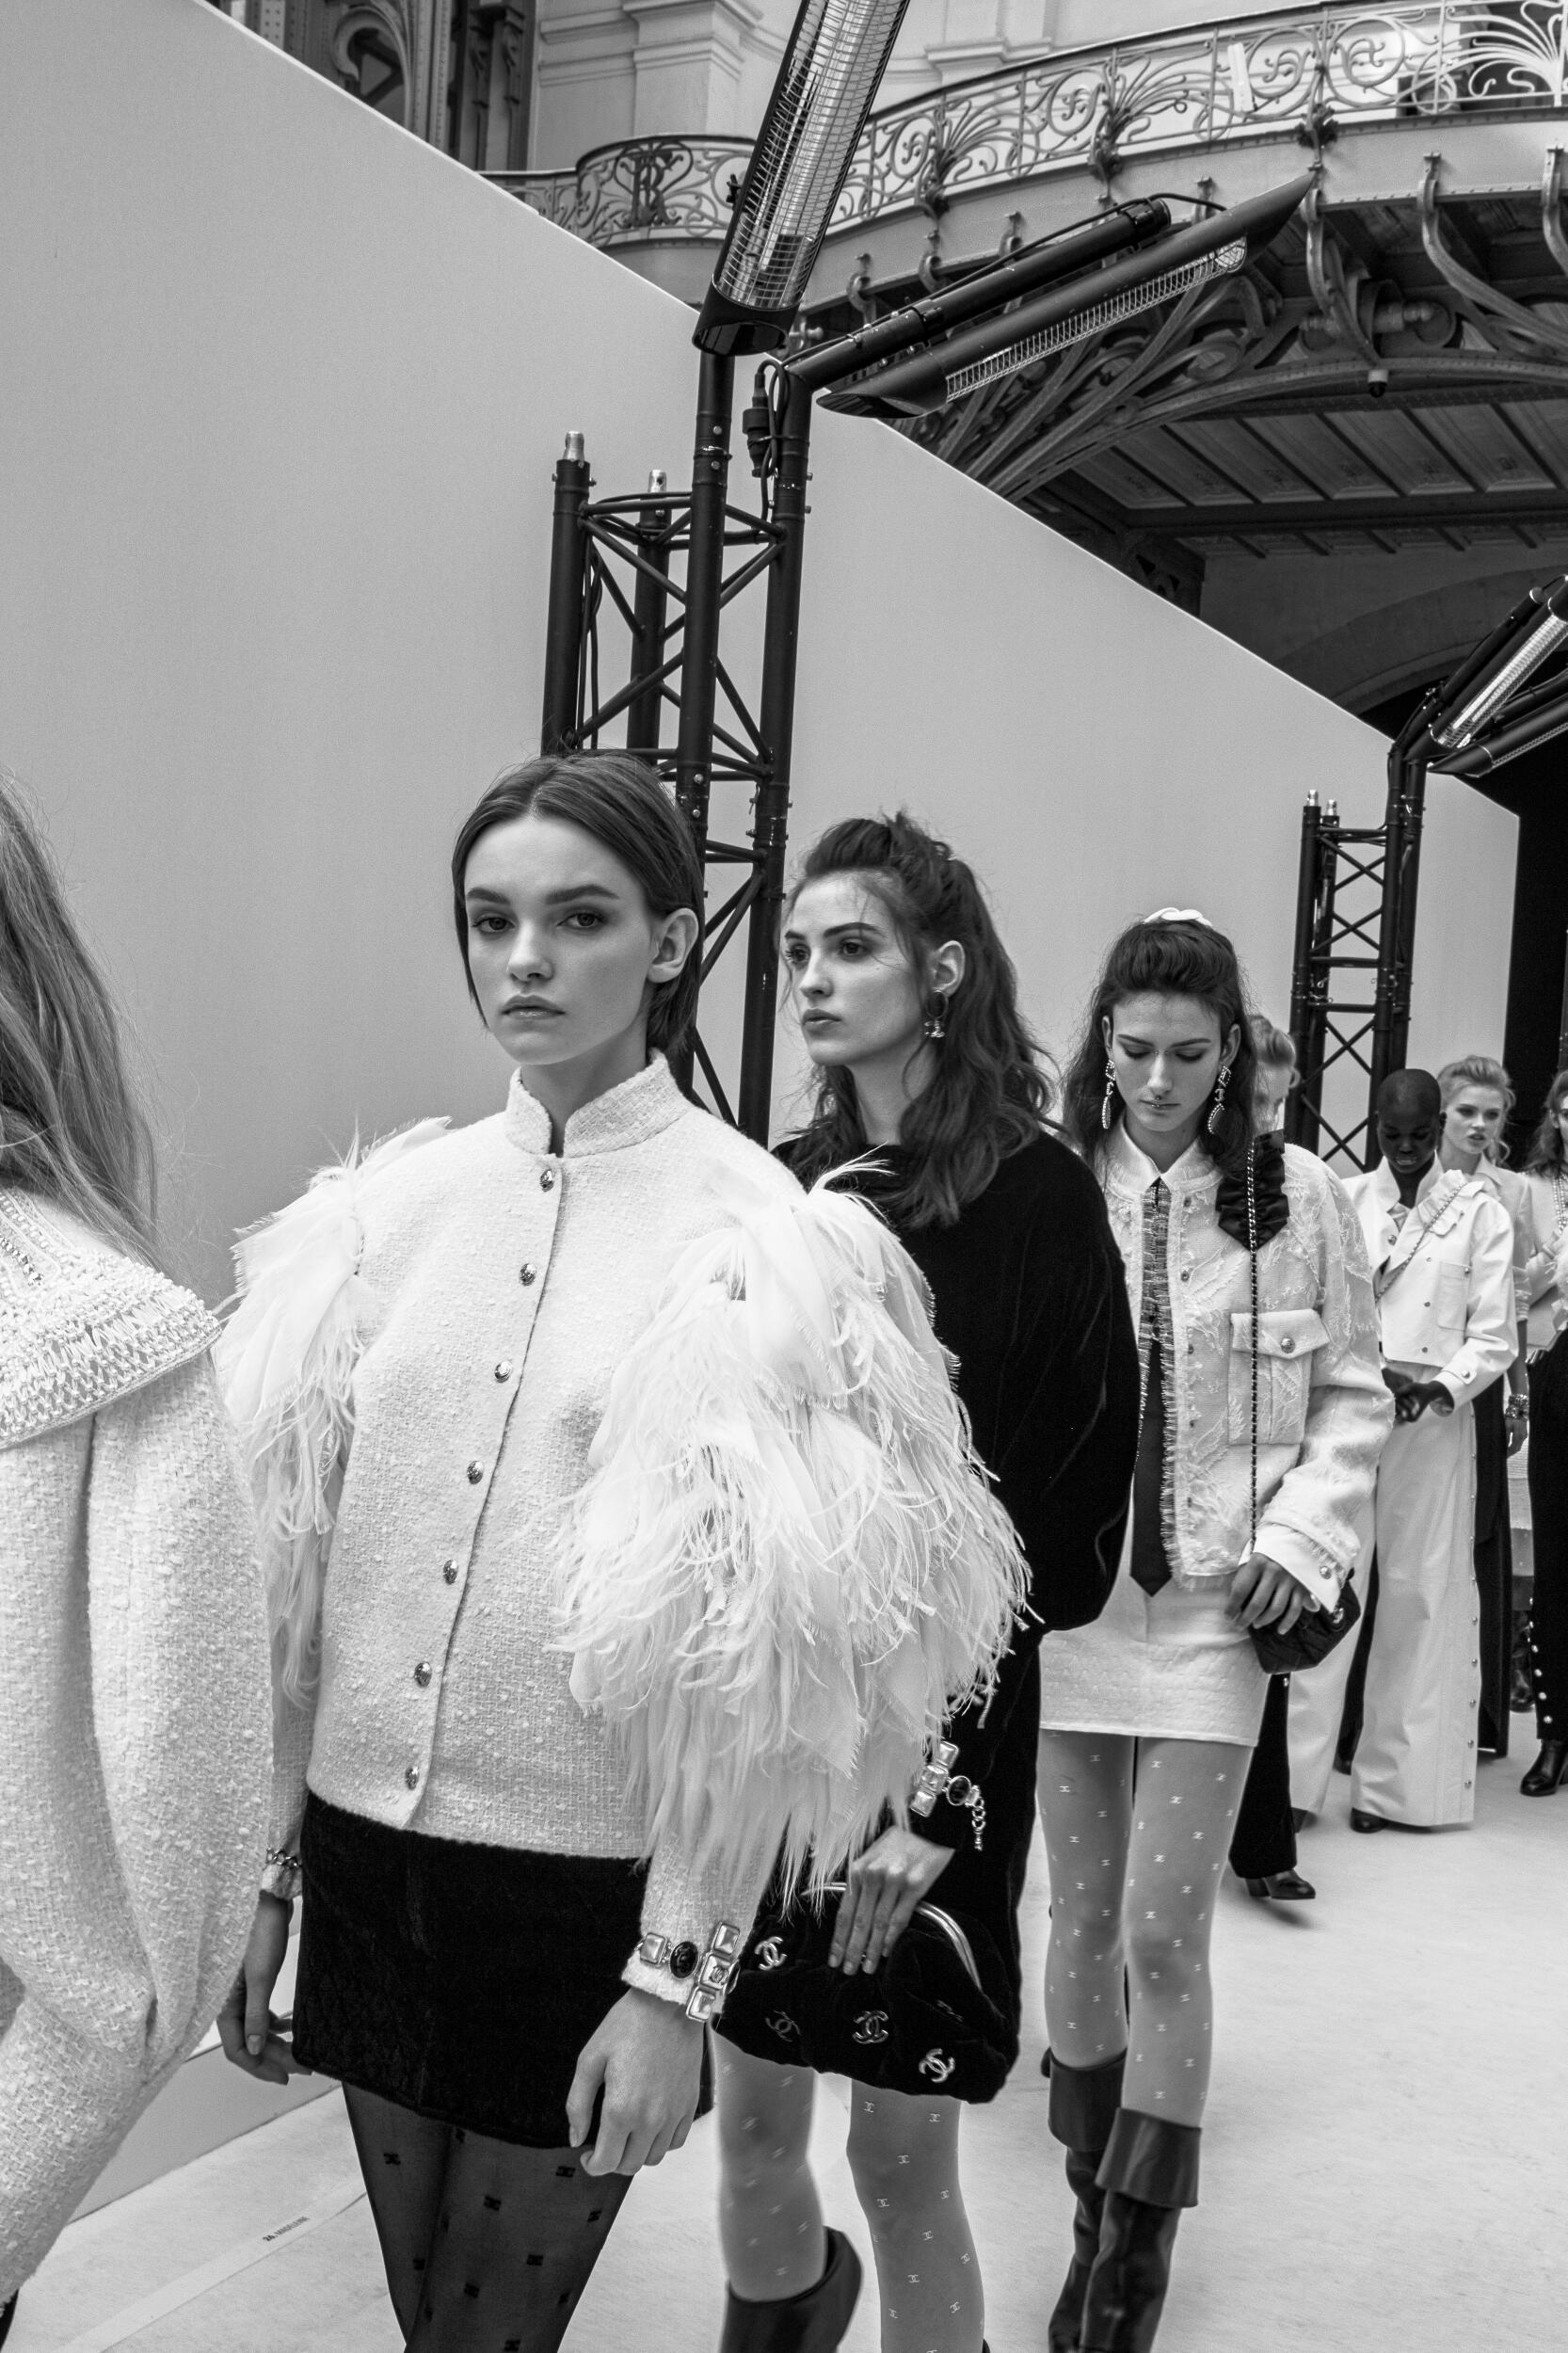 Backstage Chanel 2020